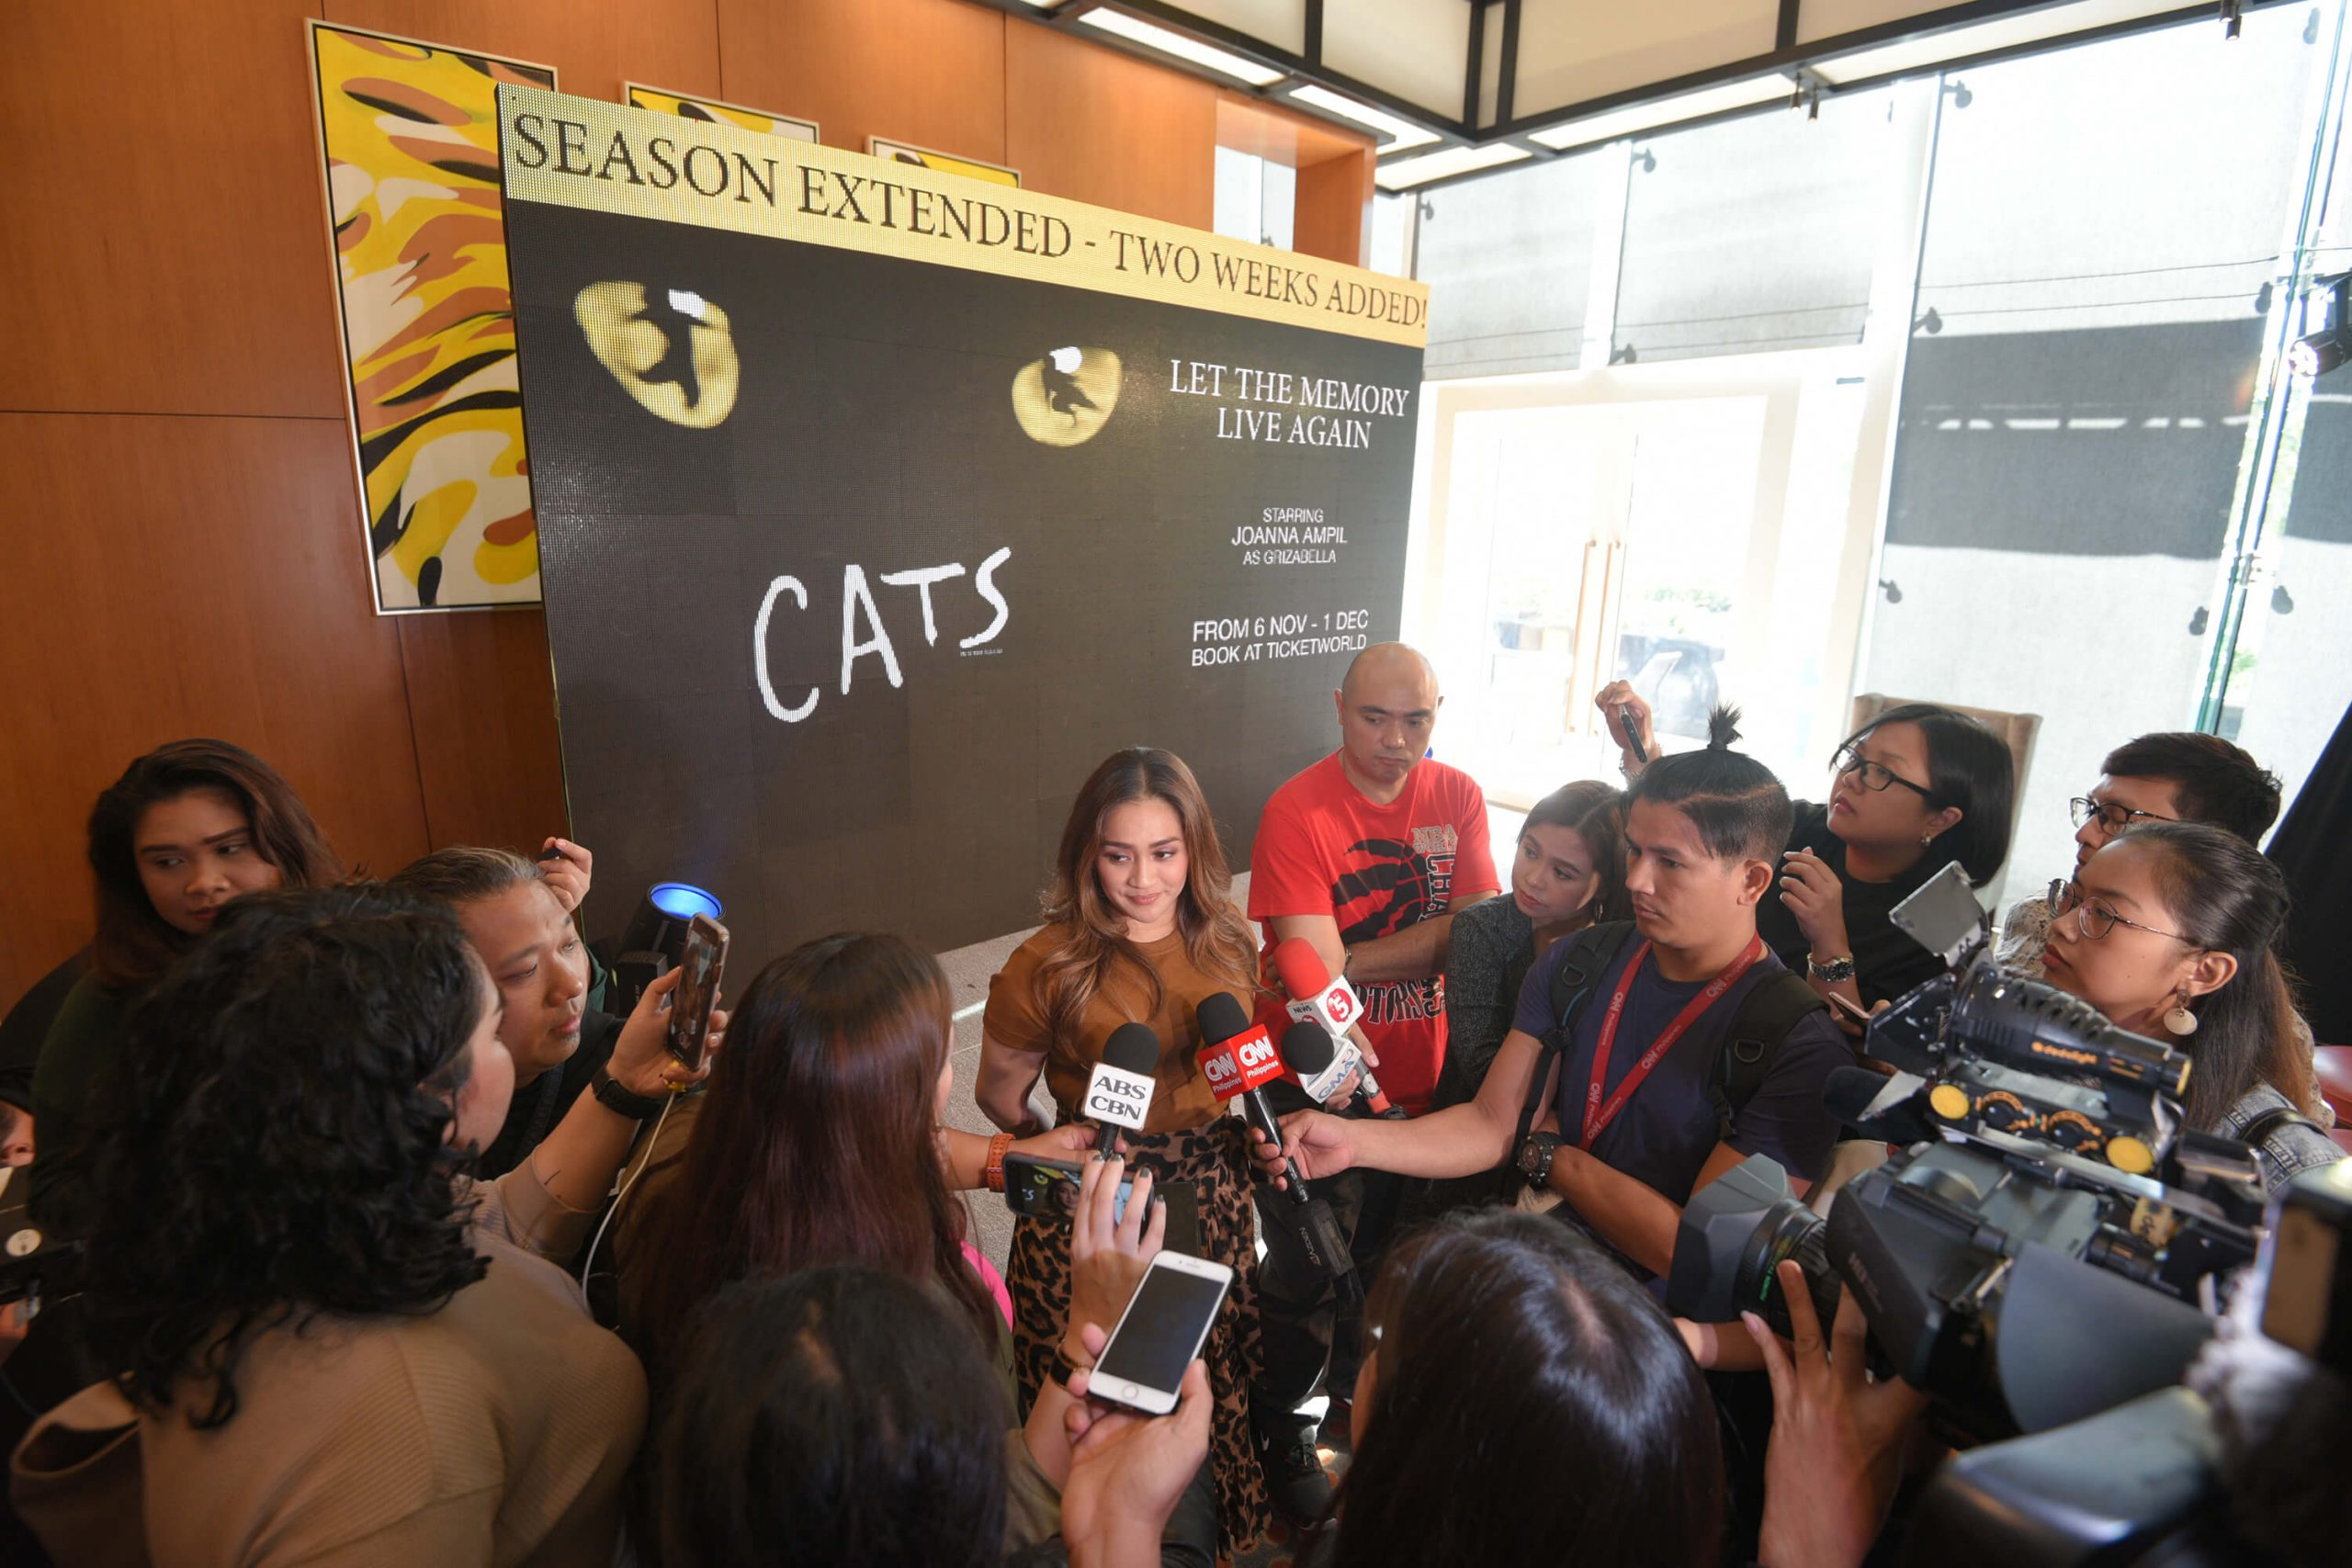 CATS_Gallery_12